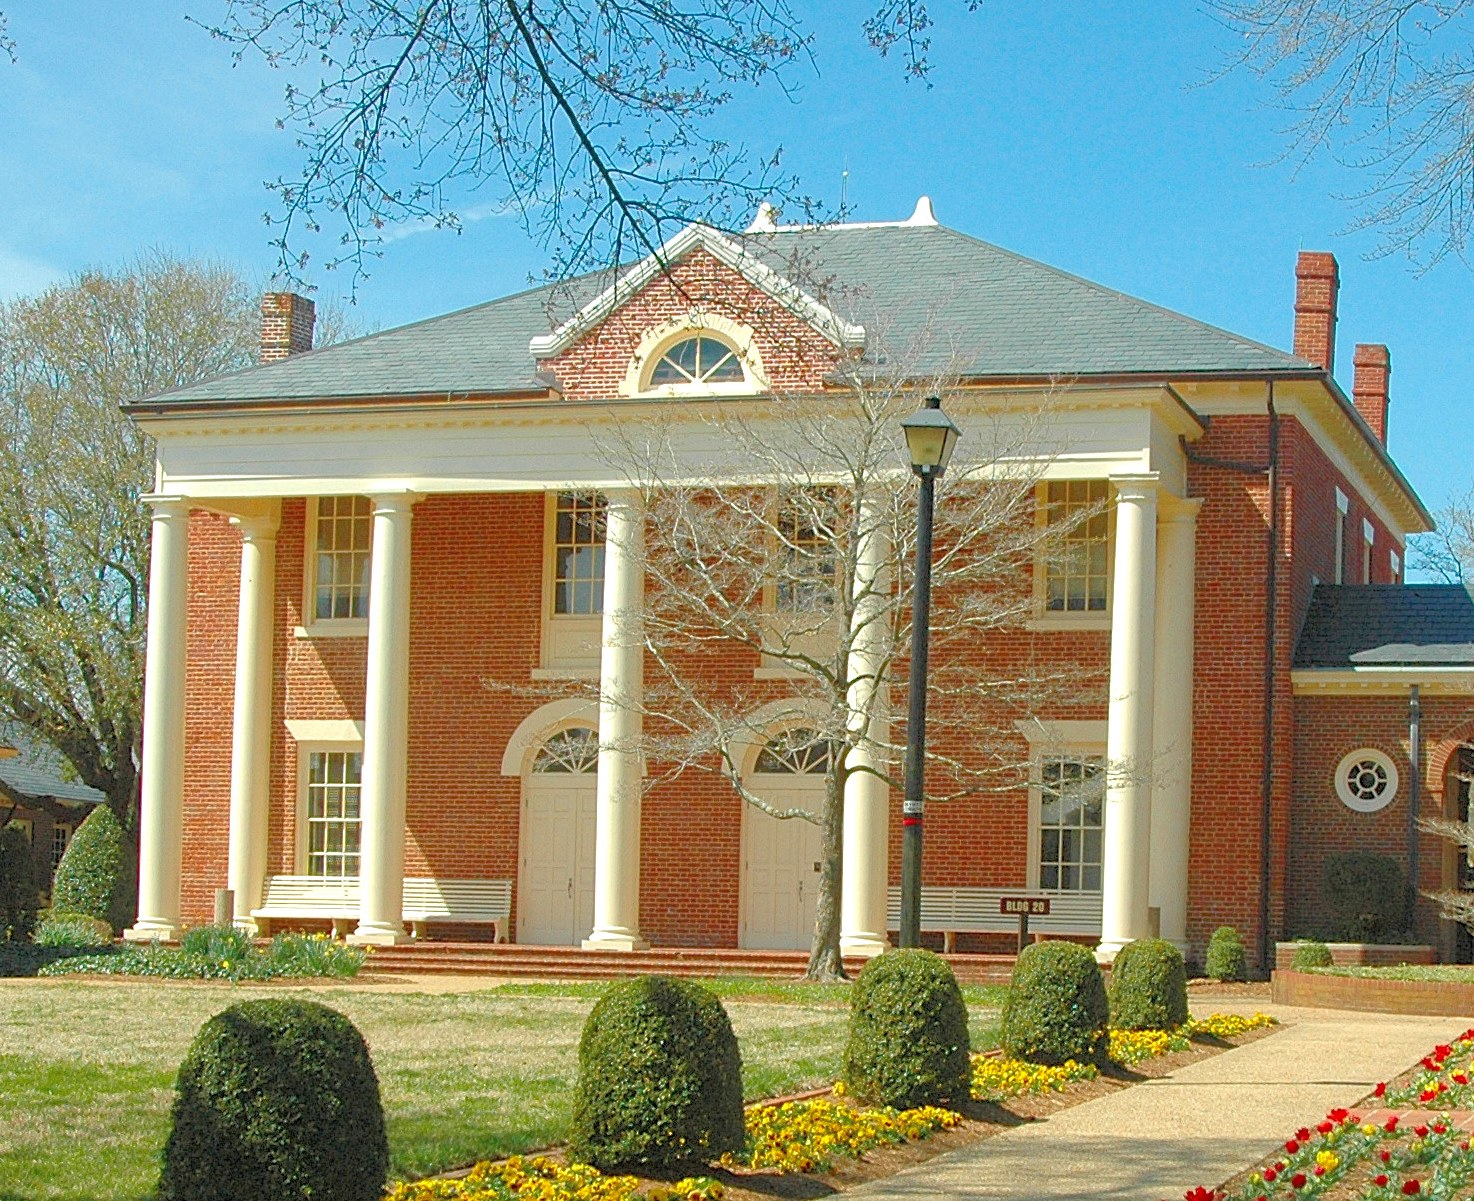 The 1822 Princess Anne County Courthouse as it appears today.